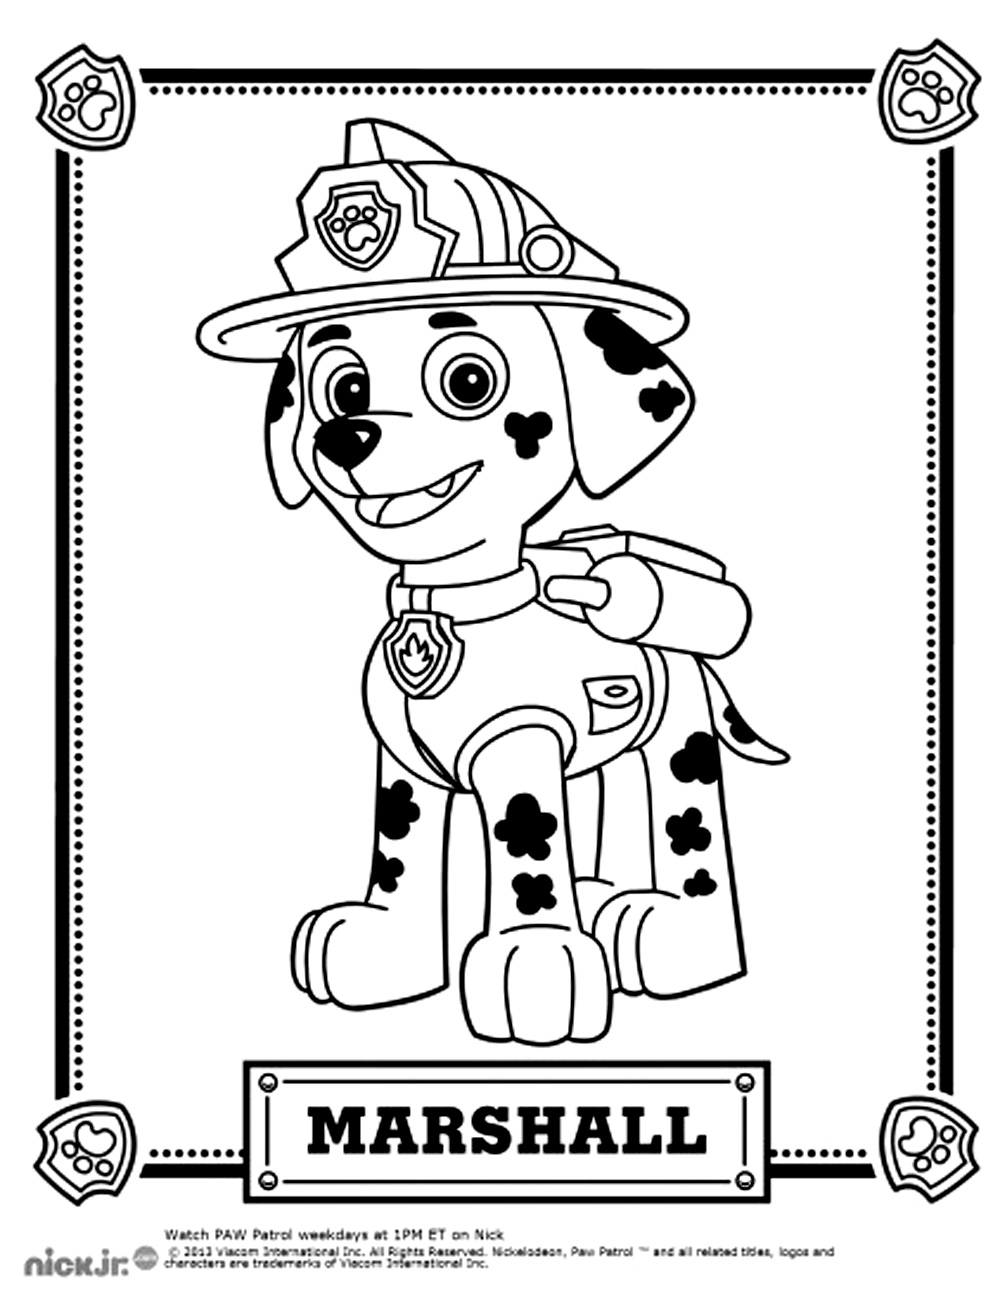 paw patrol coloring characters paw patrol free to color for kids paw patrol kids patrol coloring paw characters